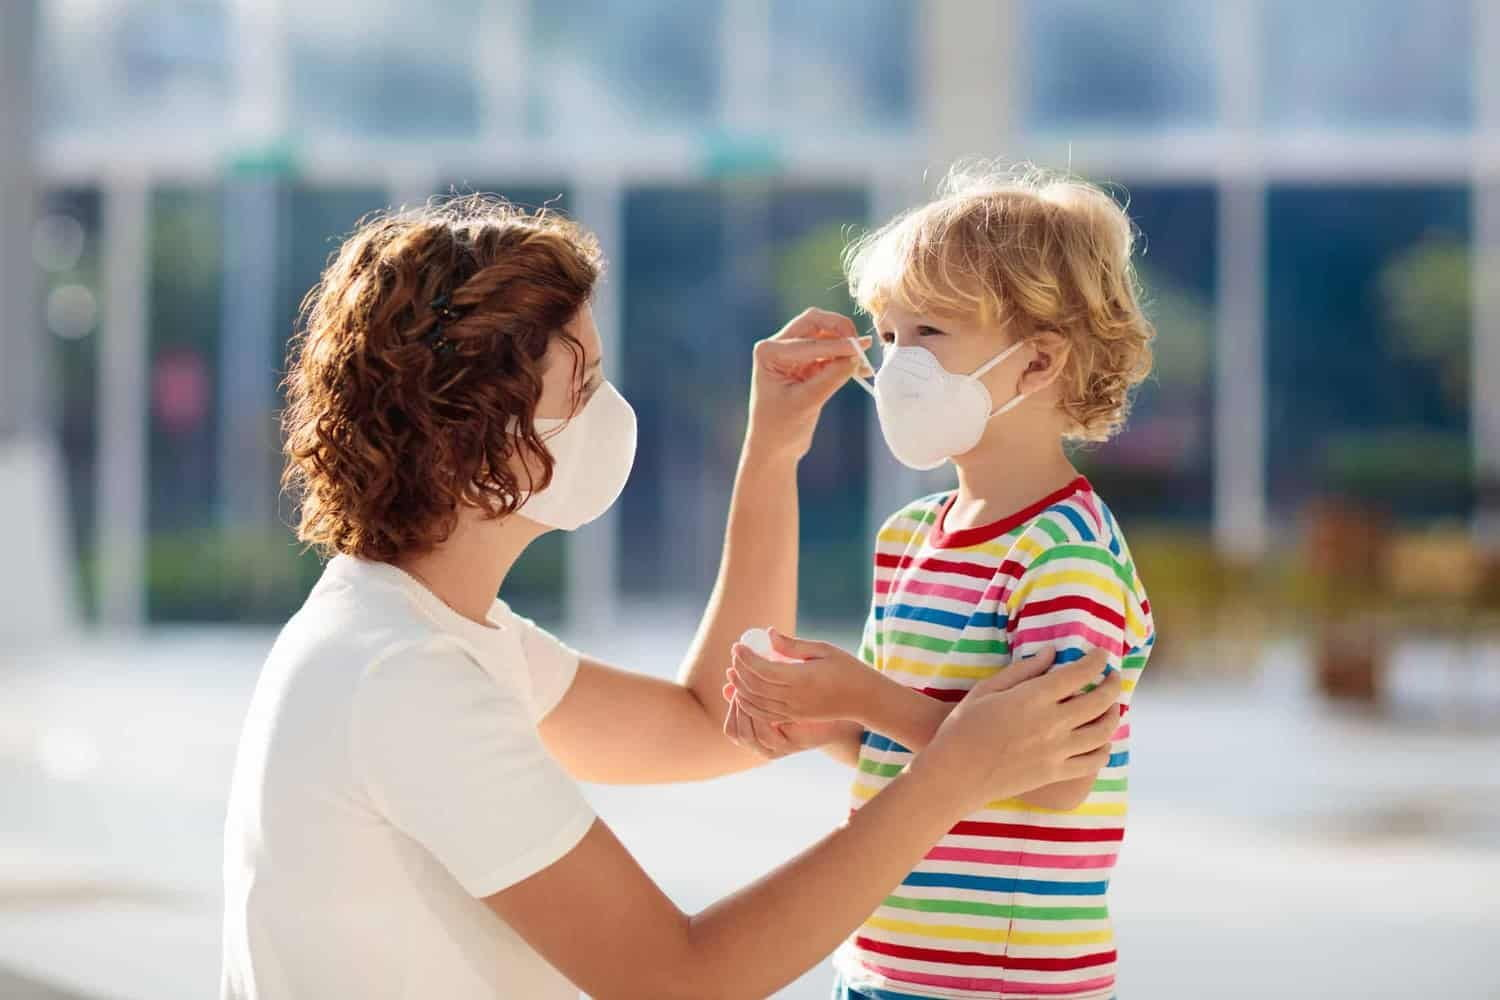 Mother fitting a medical mask on her young child.